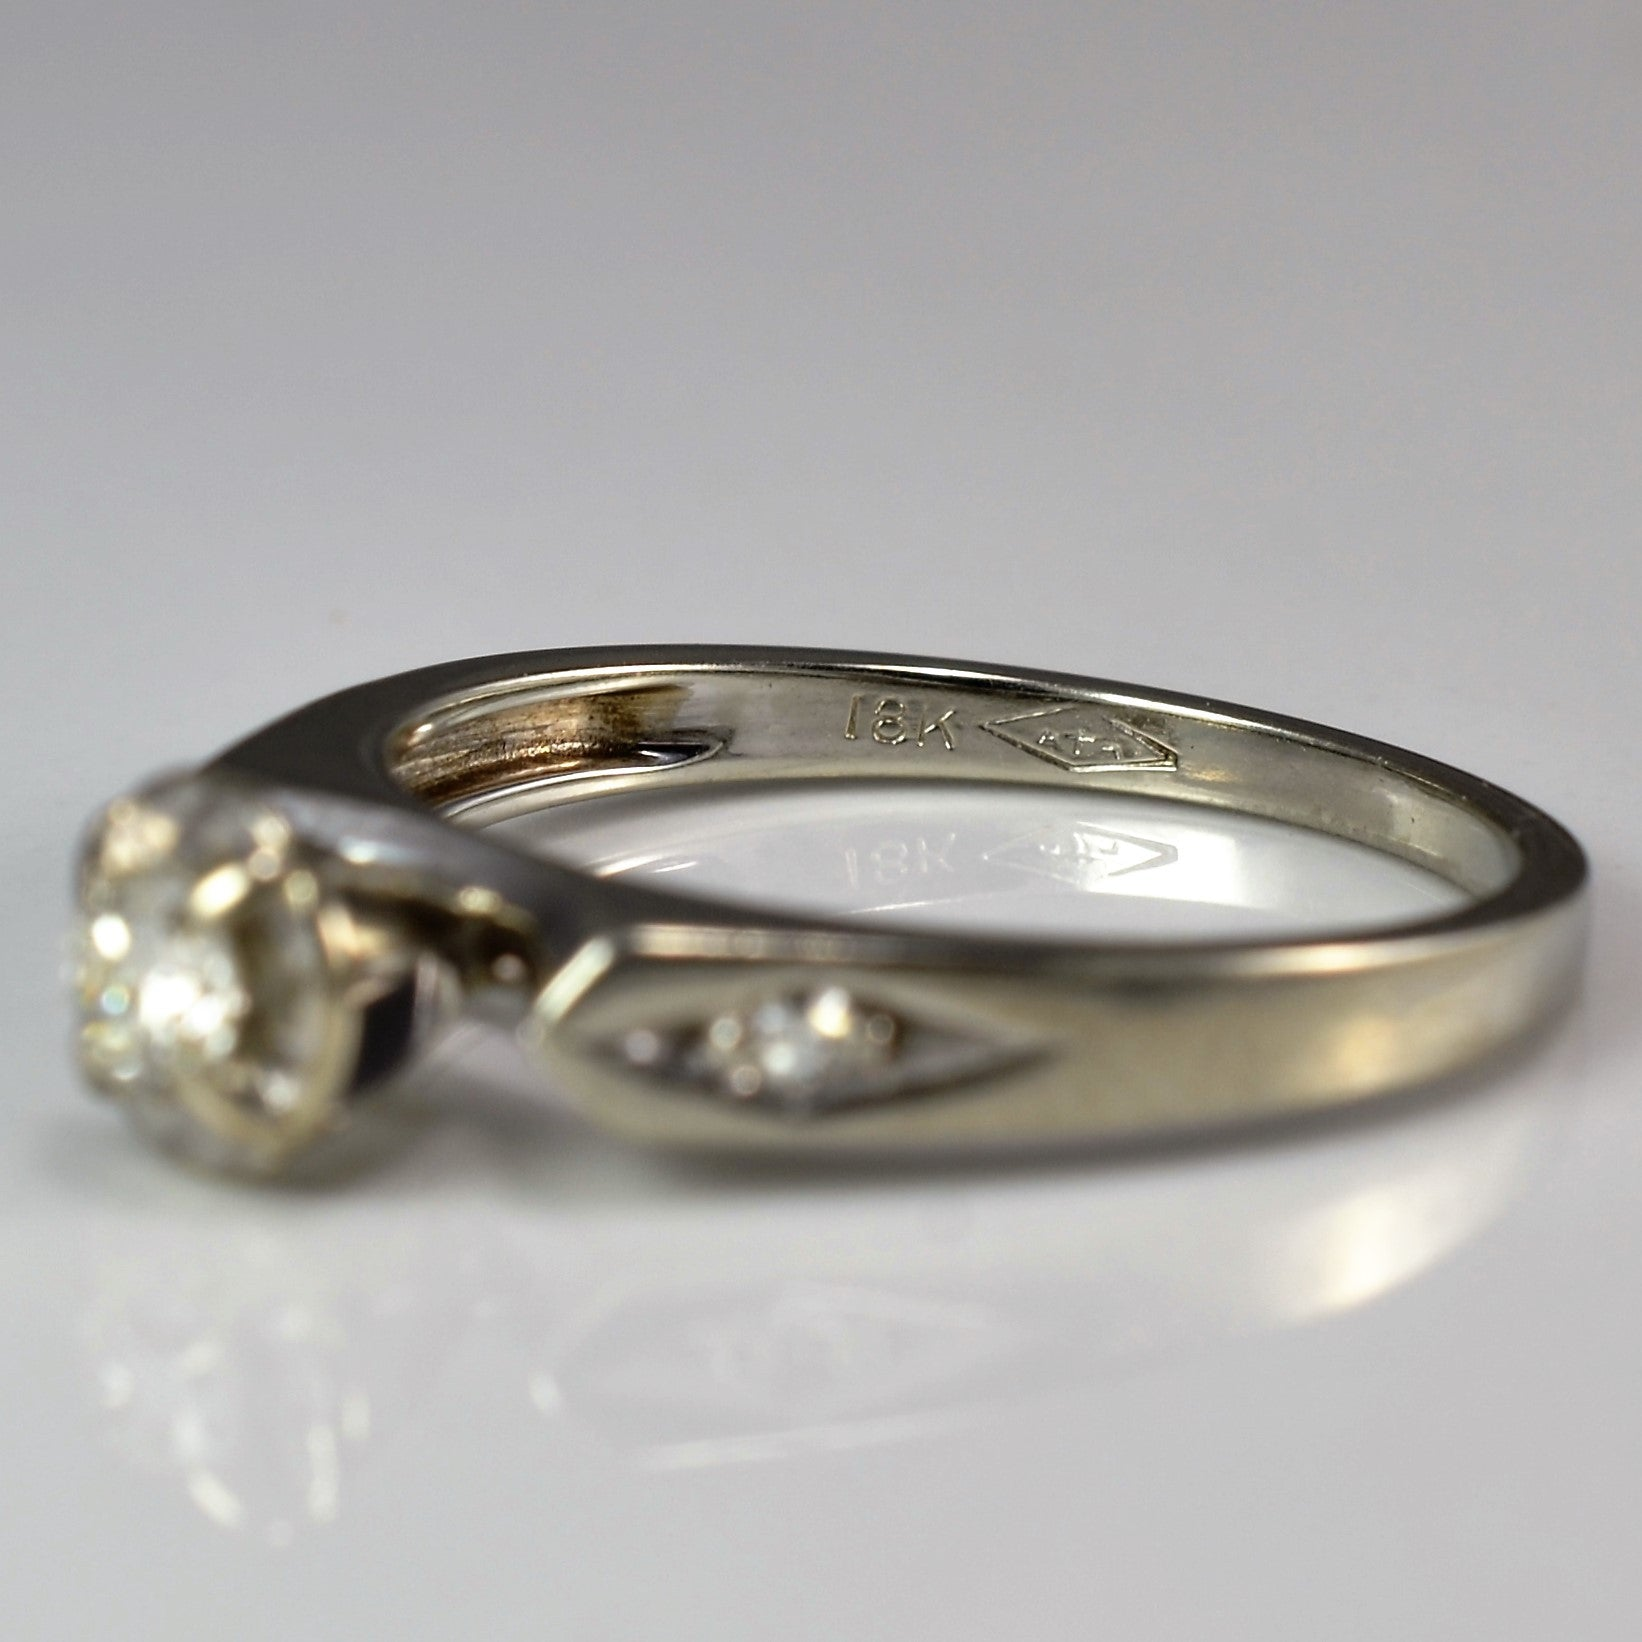 Retro Illusion High Set Engagement Ring | 0.17 ctw, SZ 6.75 |